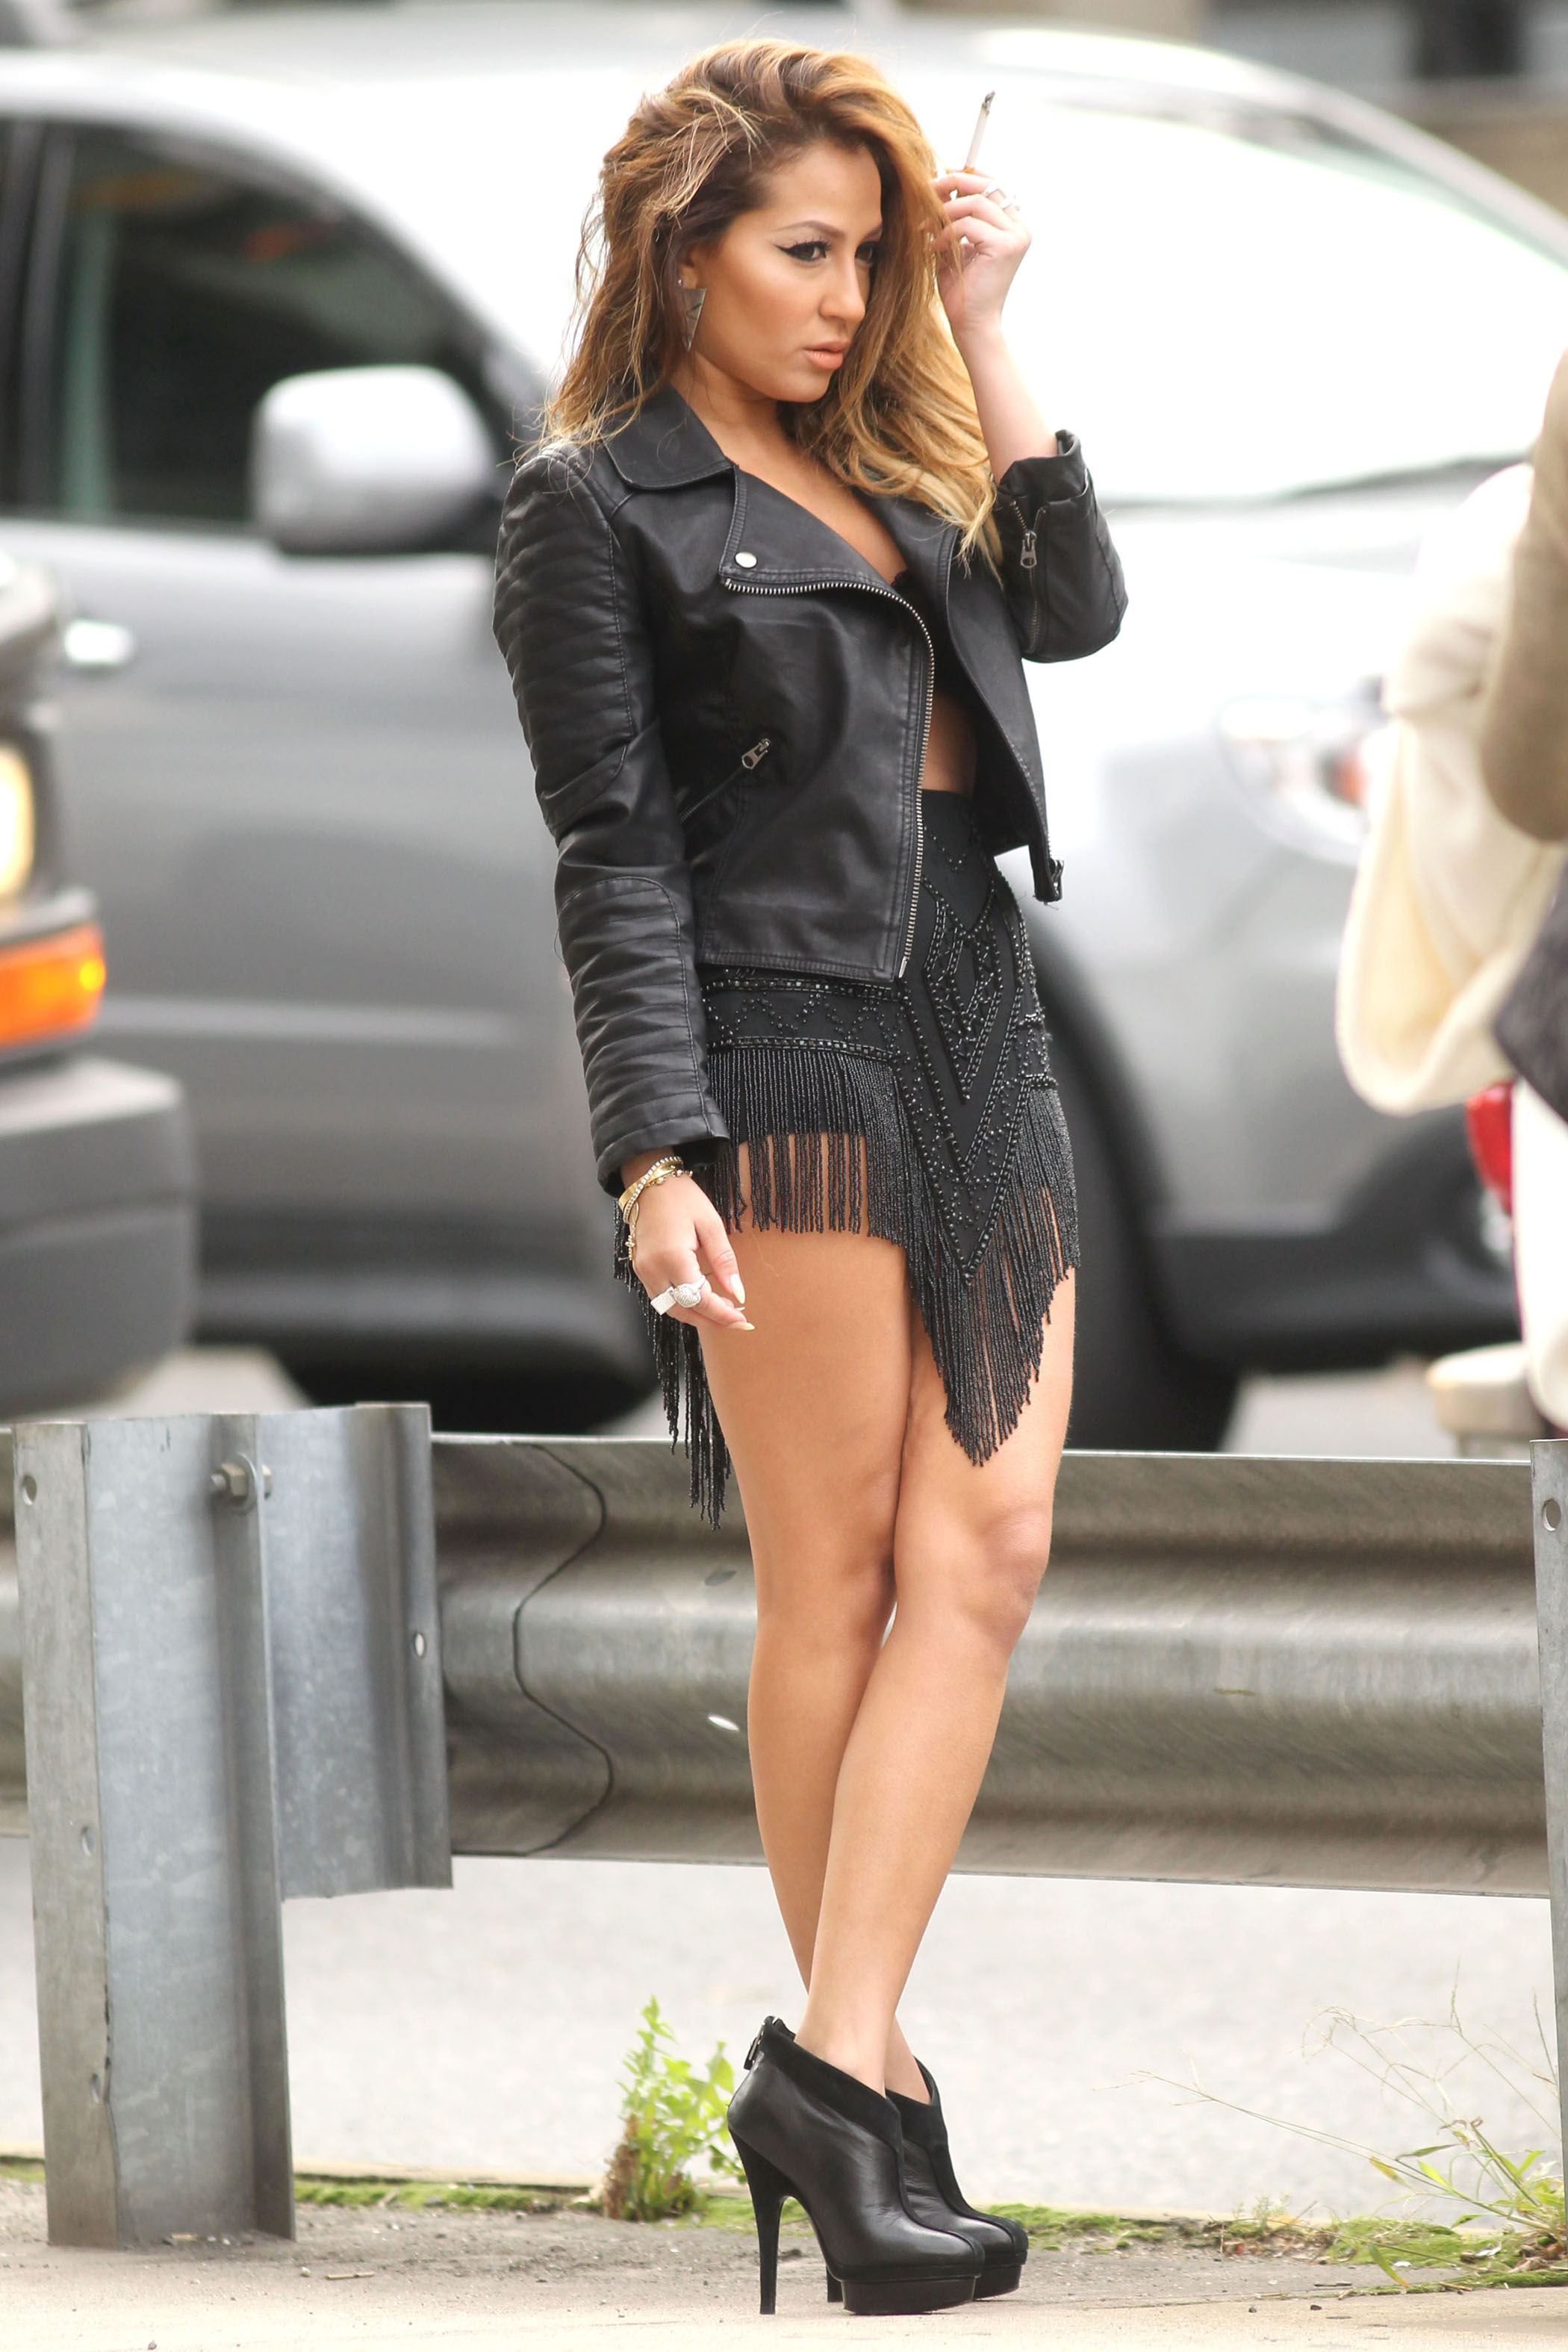 159487598_AdrienneBailon_PhotoshootSet_Upskirt_October2012_18_122_477lo.jpg